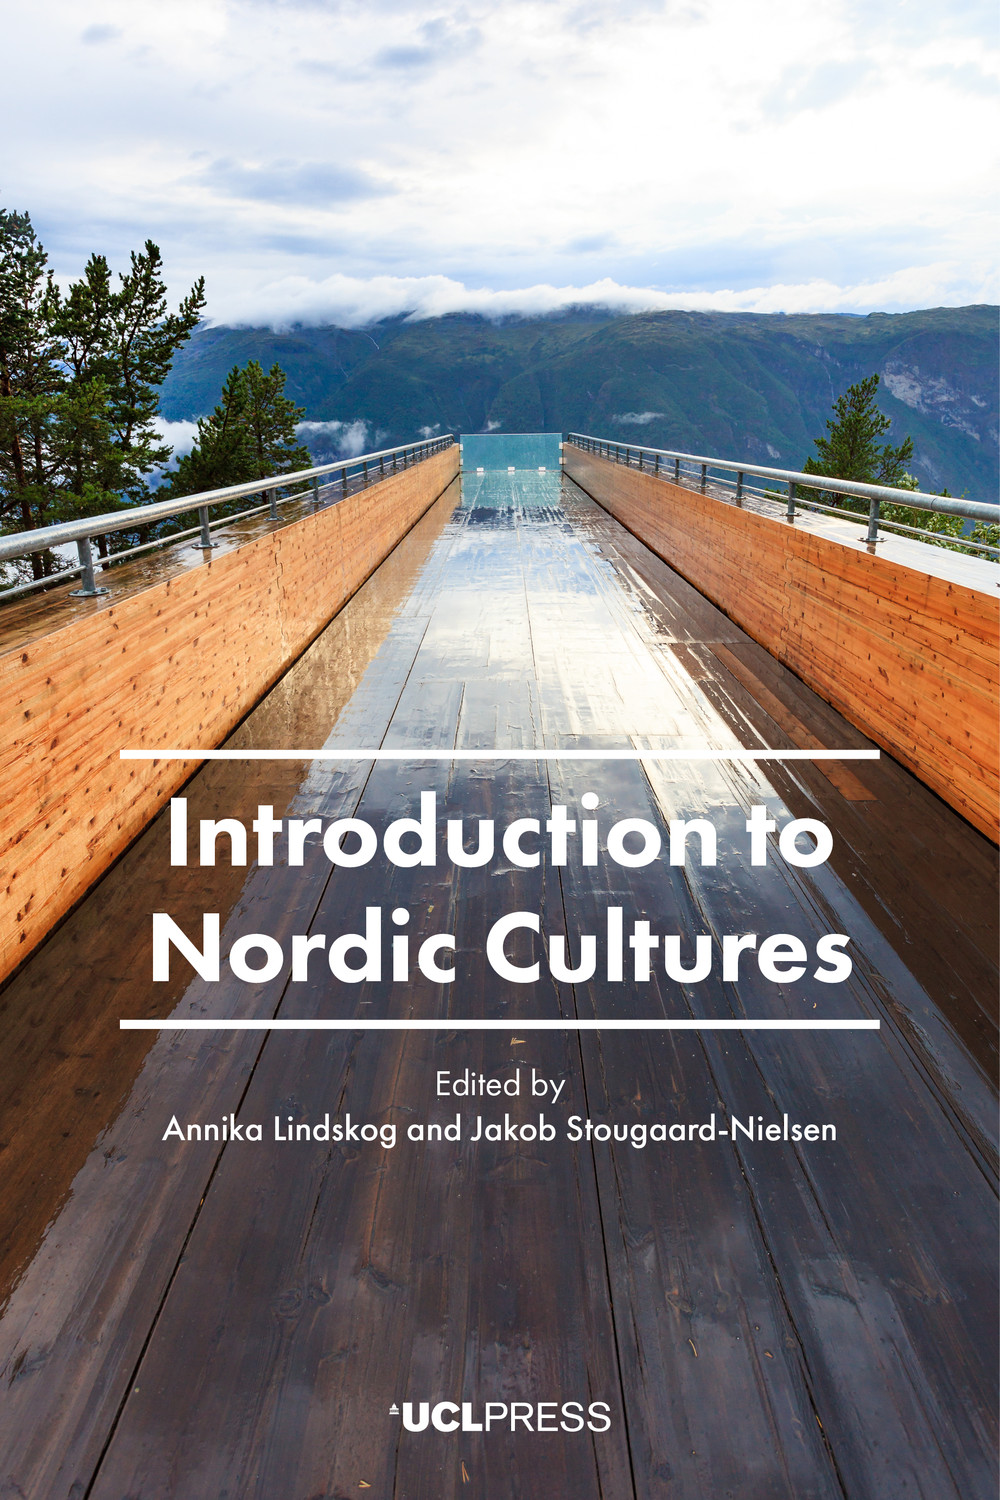 Introduction to Nordic Cultures